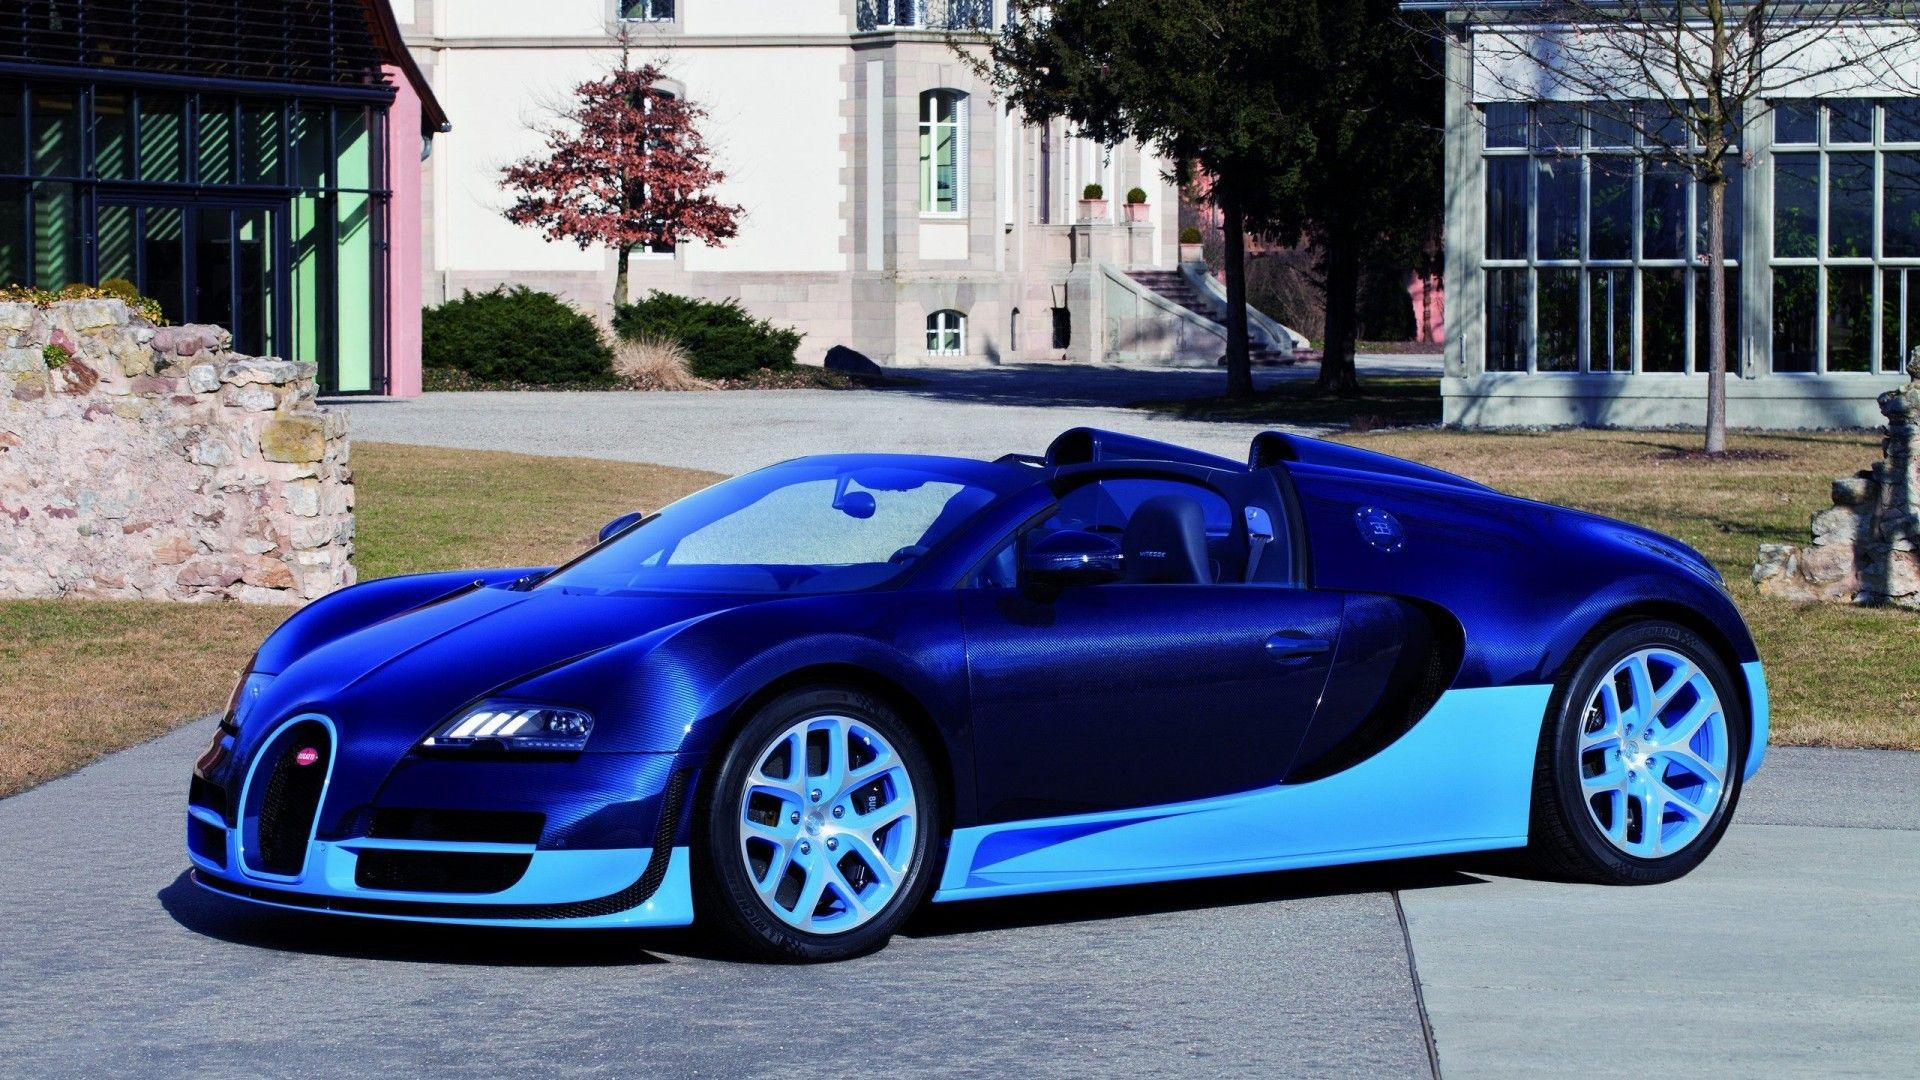 b1dff2d649e7ab30de5b2a9f3ee80c14 Exciting Bugatti Veyron Cost for Oil Change Cars Trend